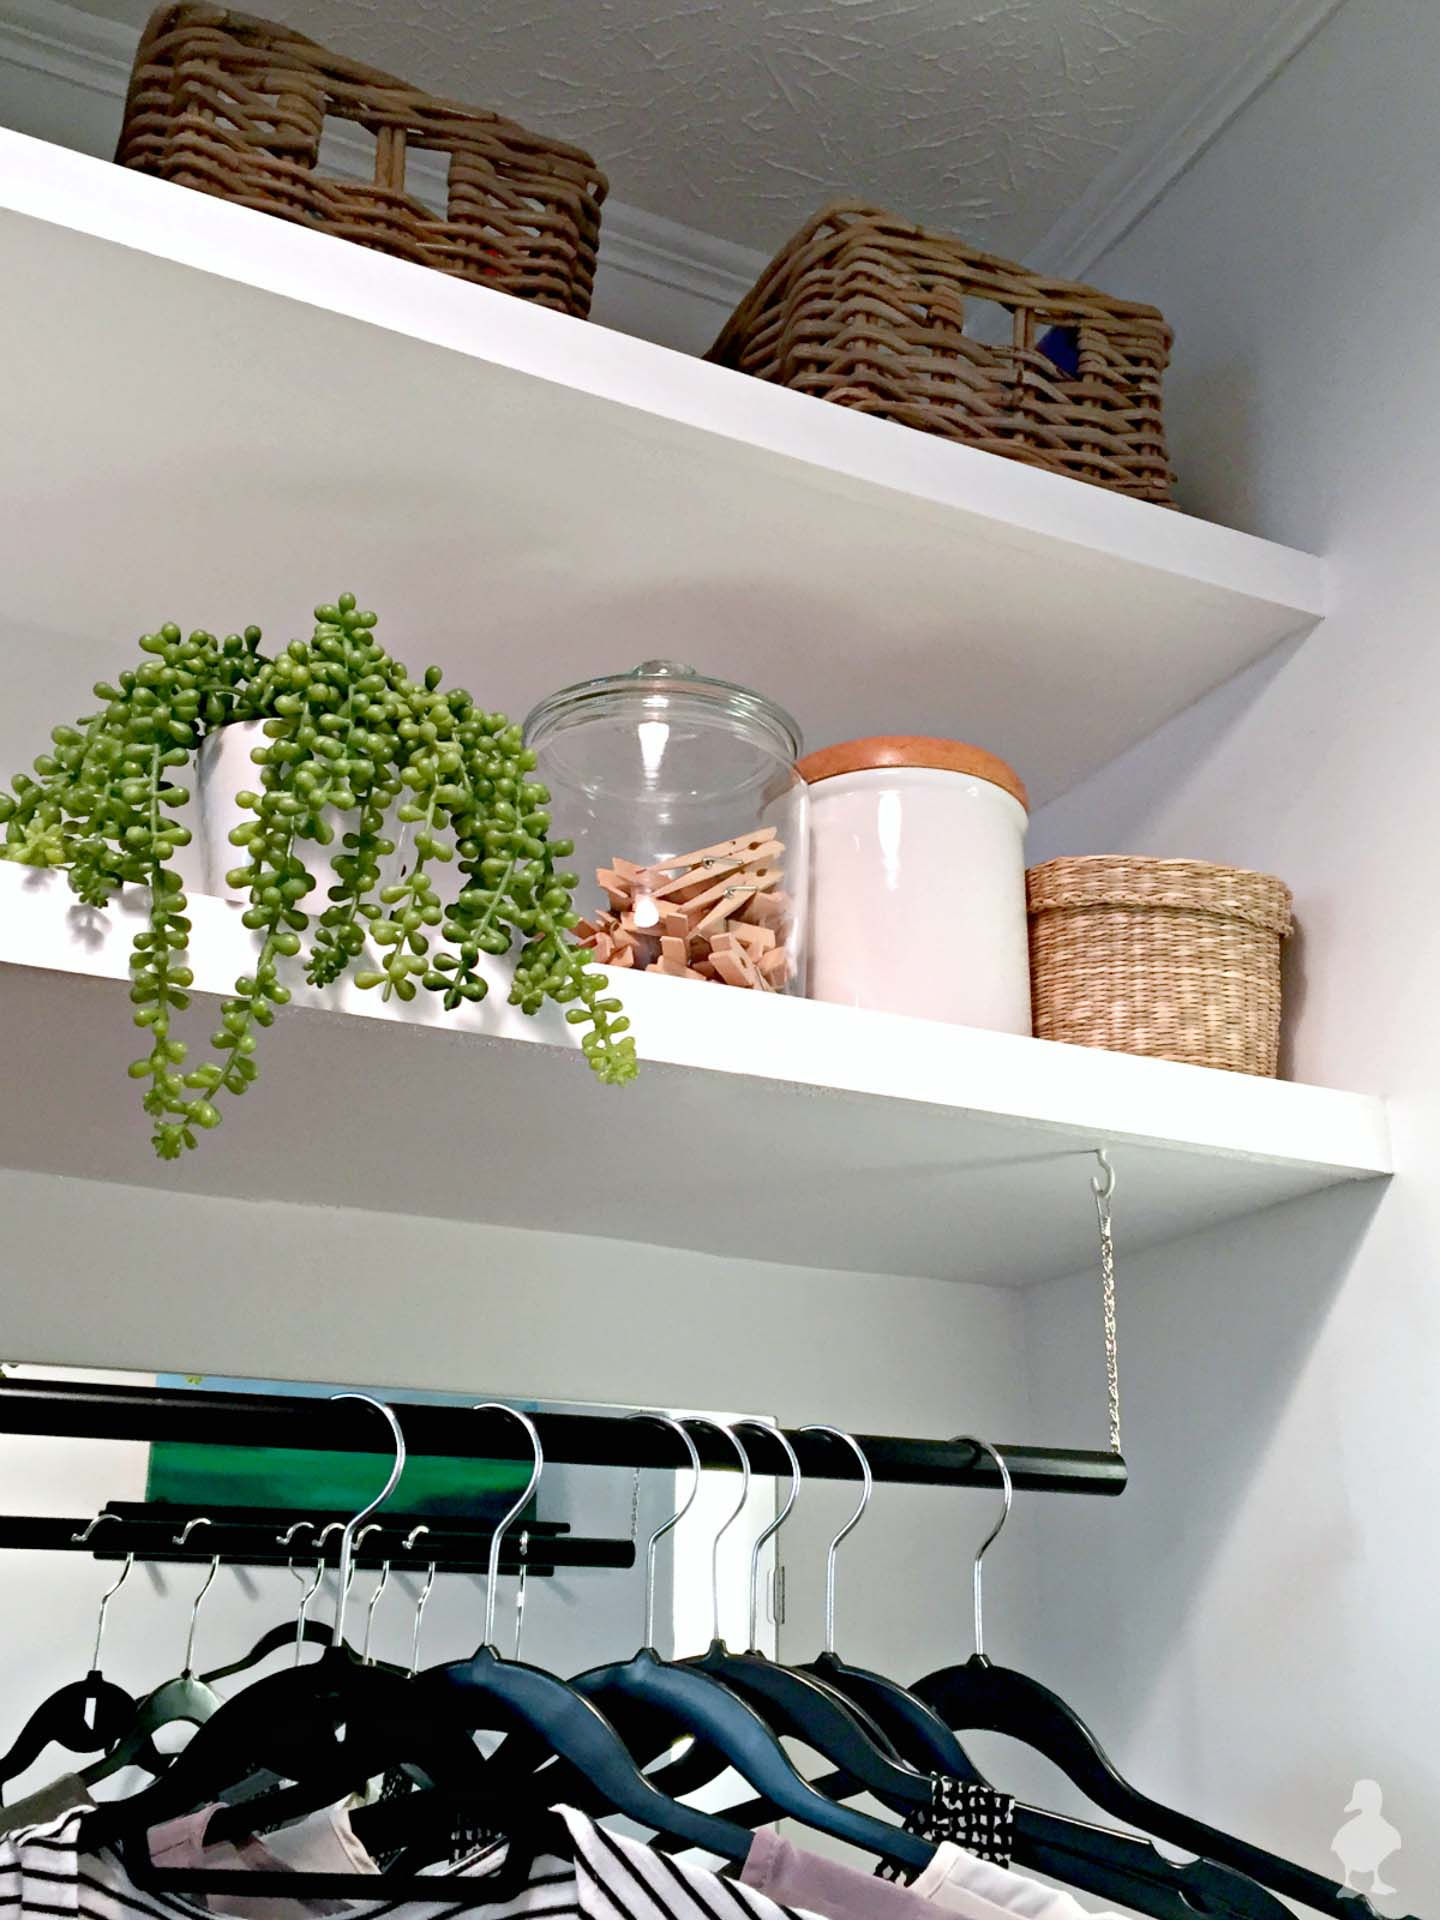 new-laundry-room-shelves-and-hanging-rod